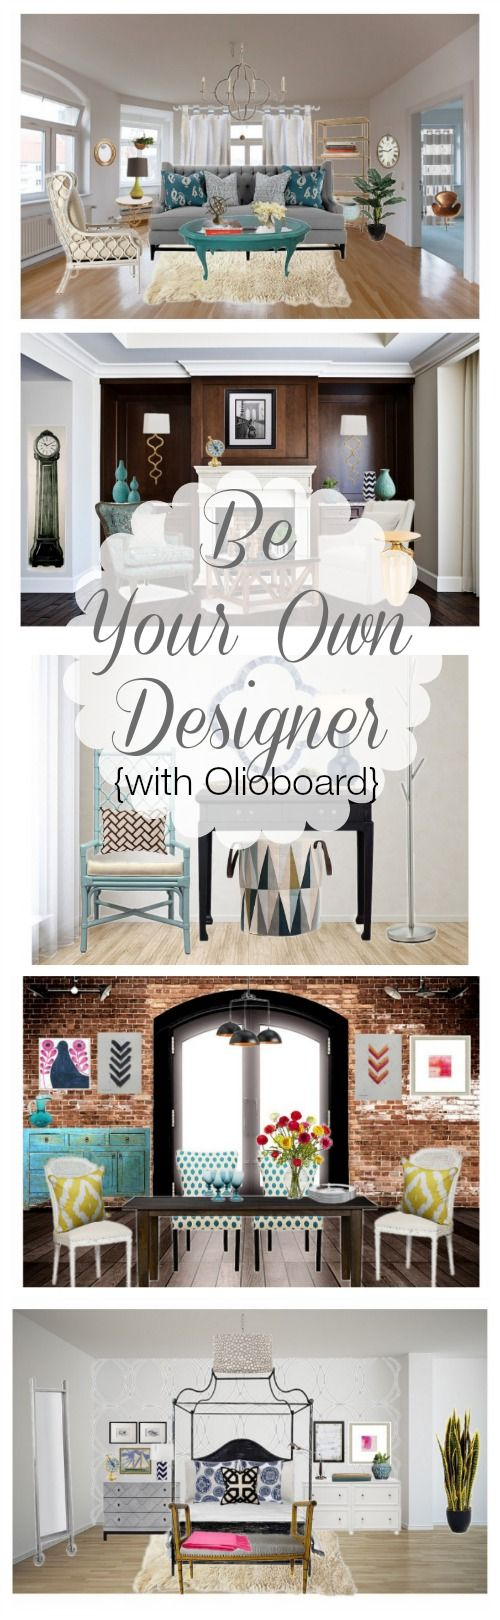 Be Your Own Designer Up To Date Interiors Interior Home Diy Home Decor Inspiration